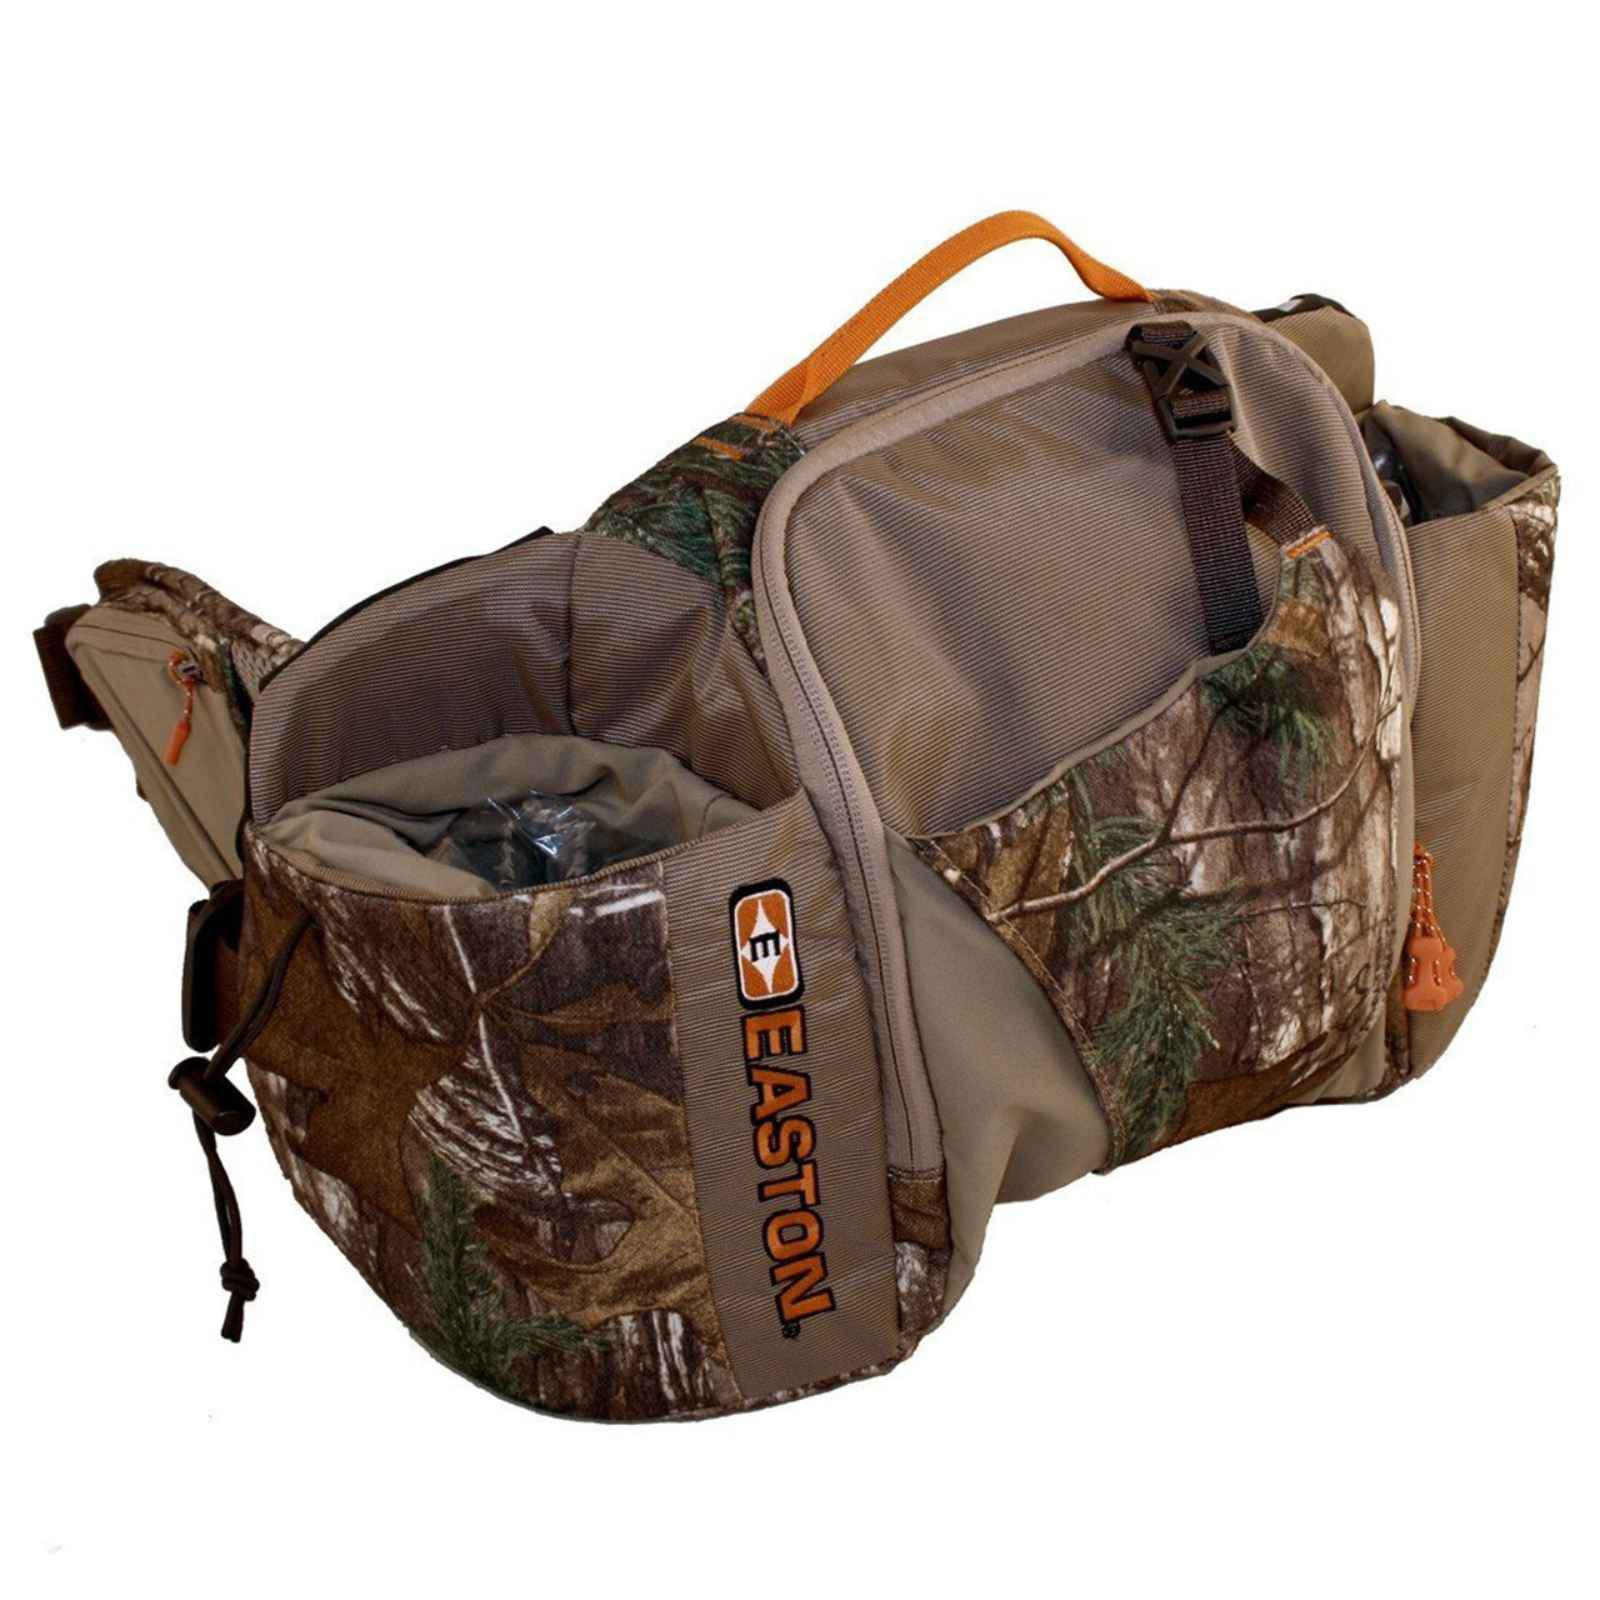 Easton Outfitters Flatline Fanny Pack Camo, 720641